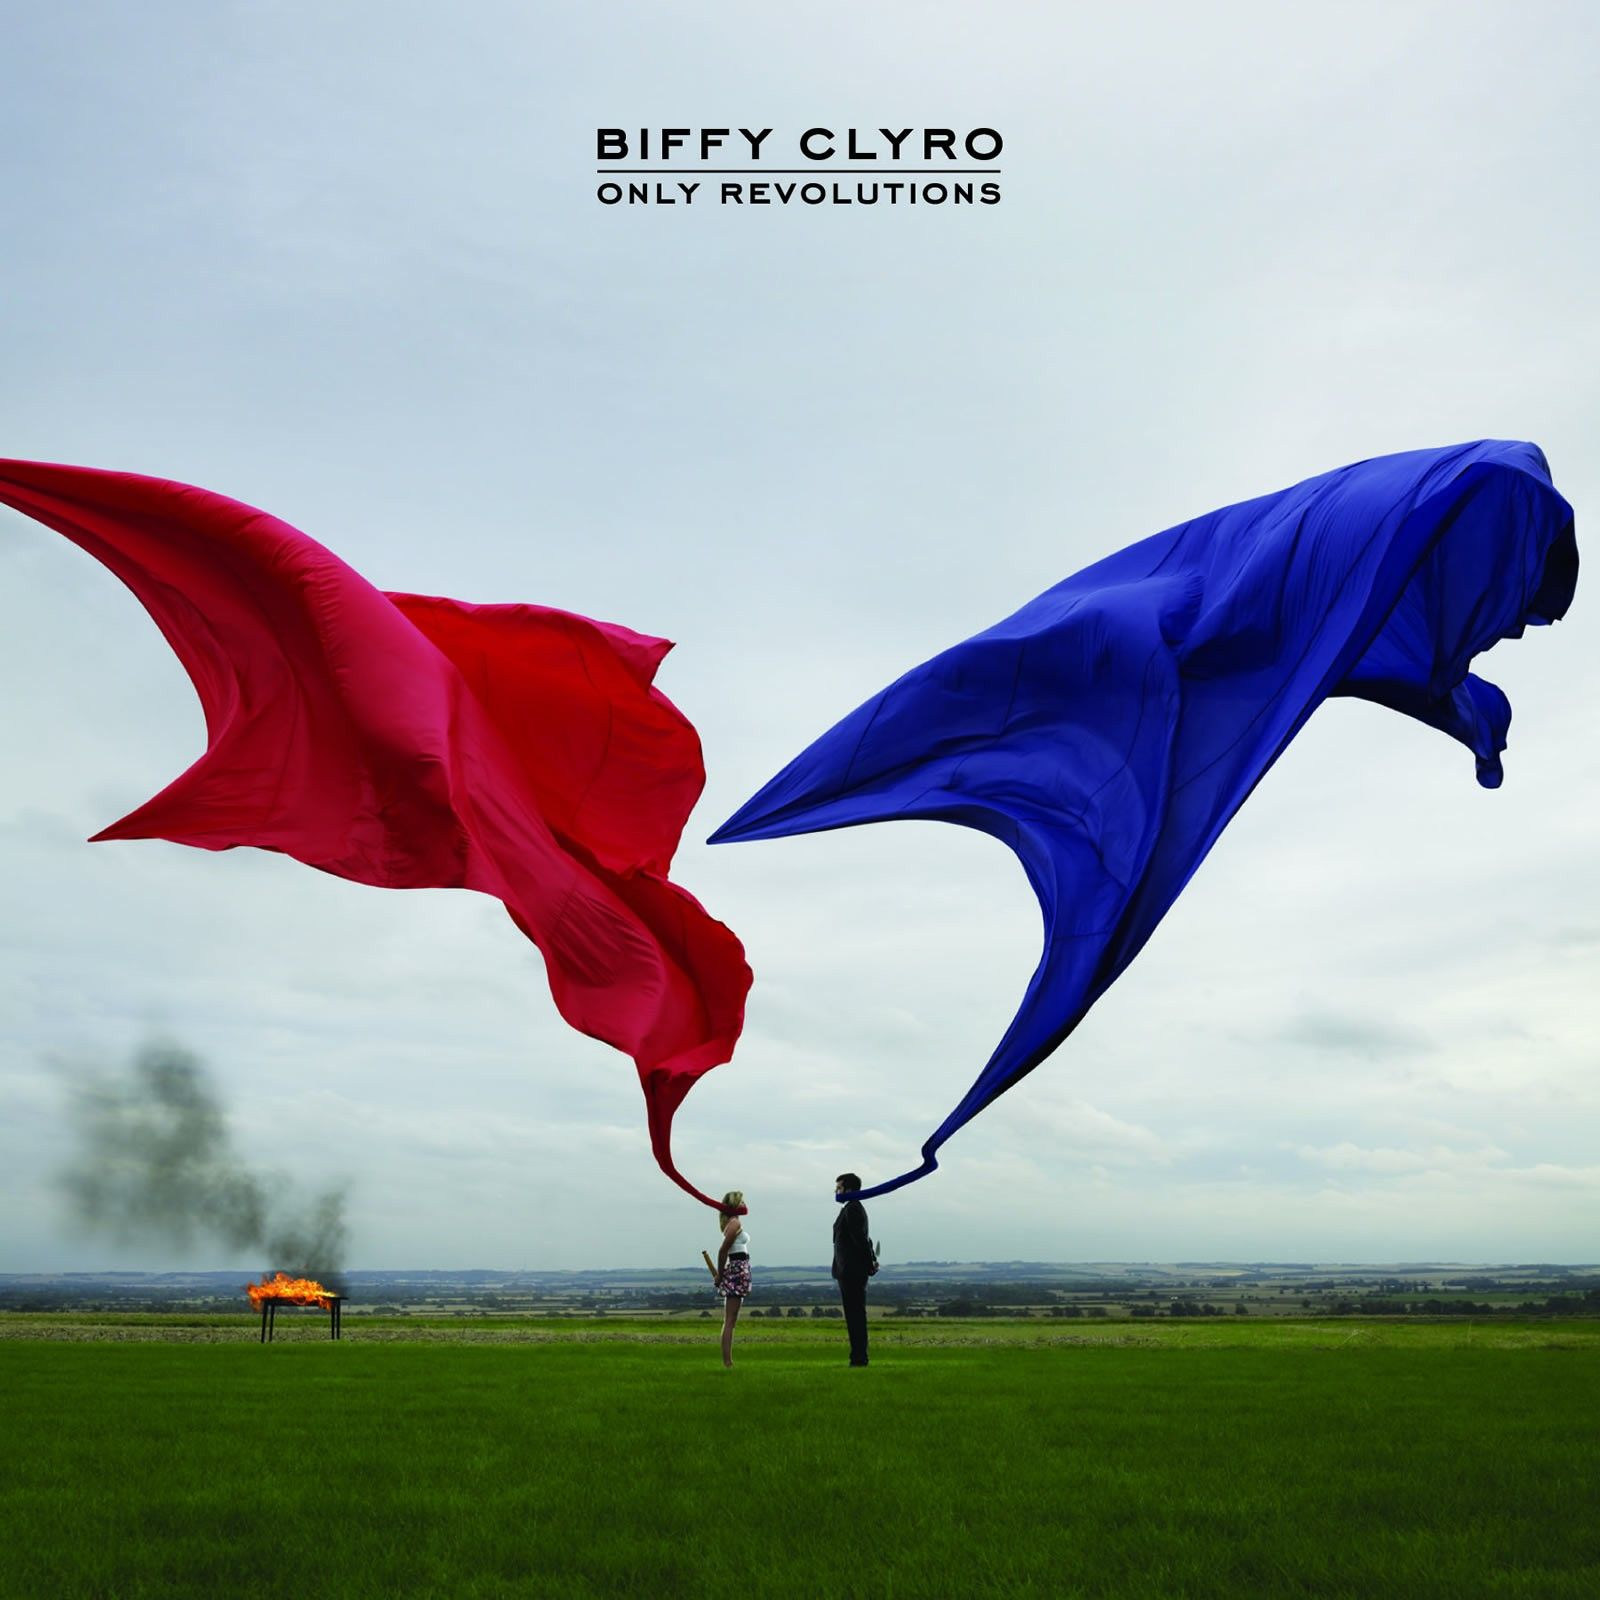 Biffy Clyro - Only Revolutions album cover